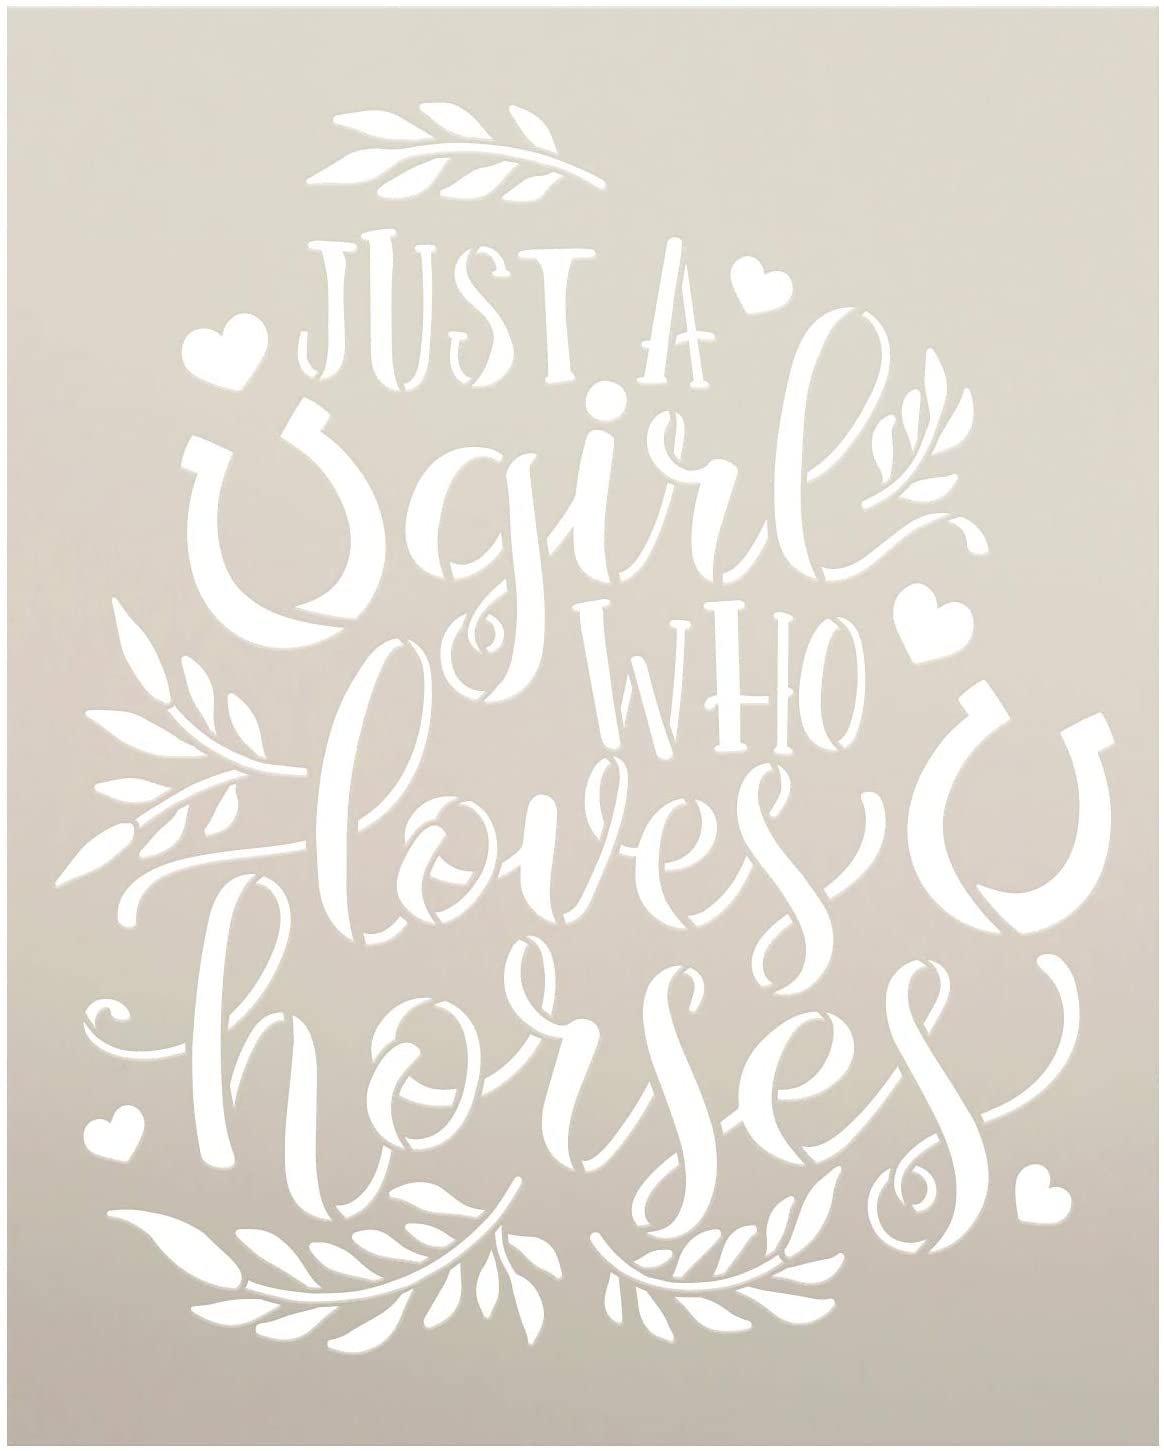 Girl Who Loves Horses Stencil by StudioR12 | DIY Country Farmhouse Laurel Home Decor | Craft & Paint Wood Sign | Reusable Mylar Template | Cursive Script Heart | Select Size